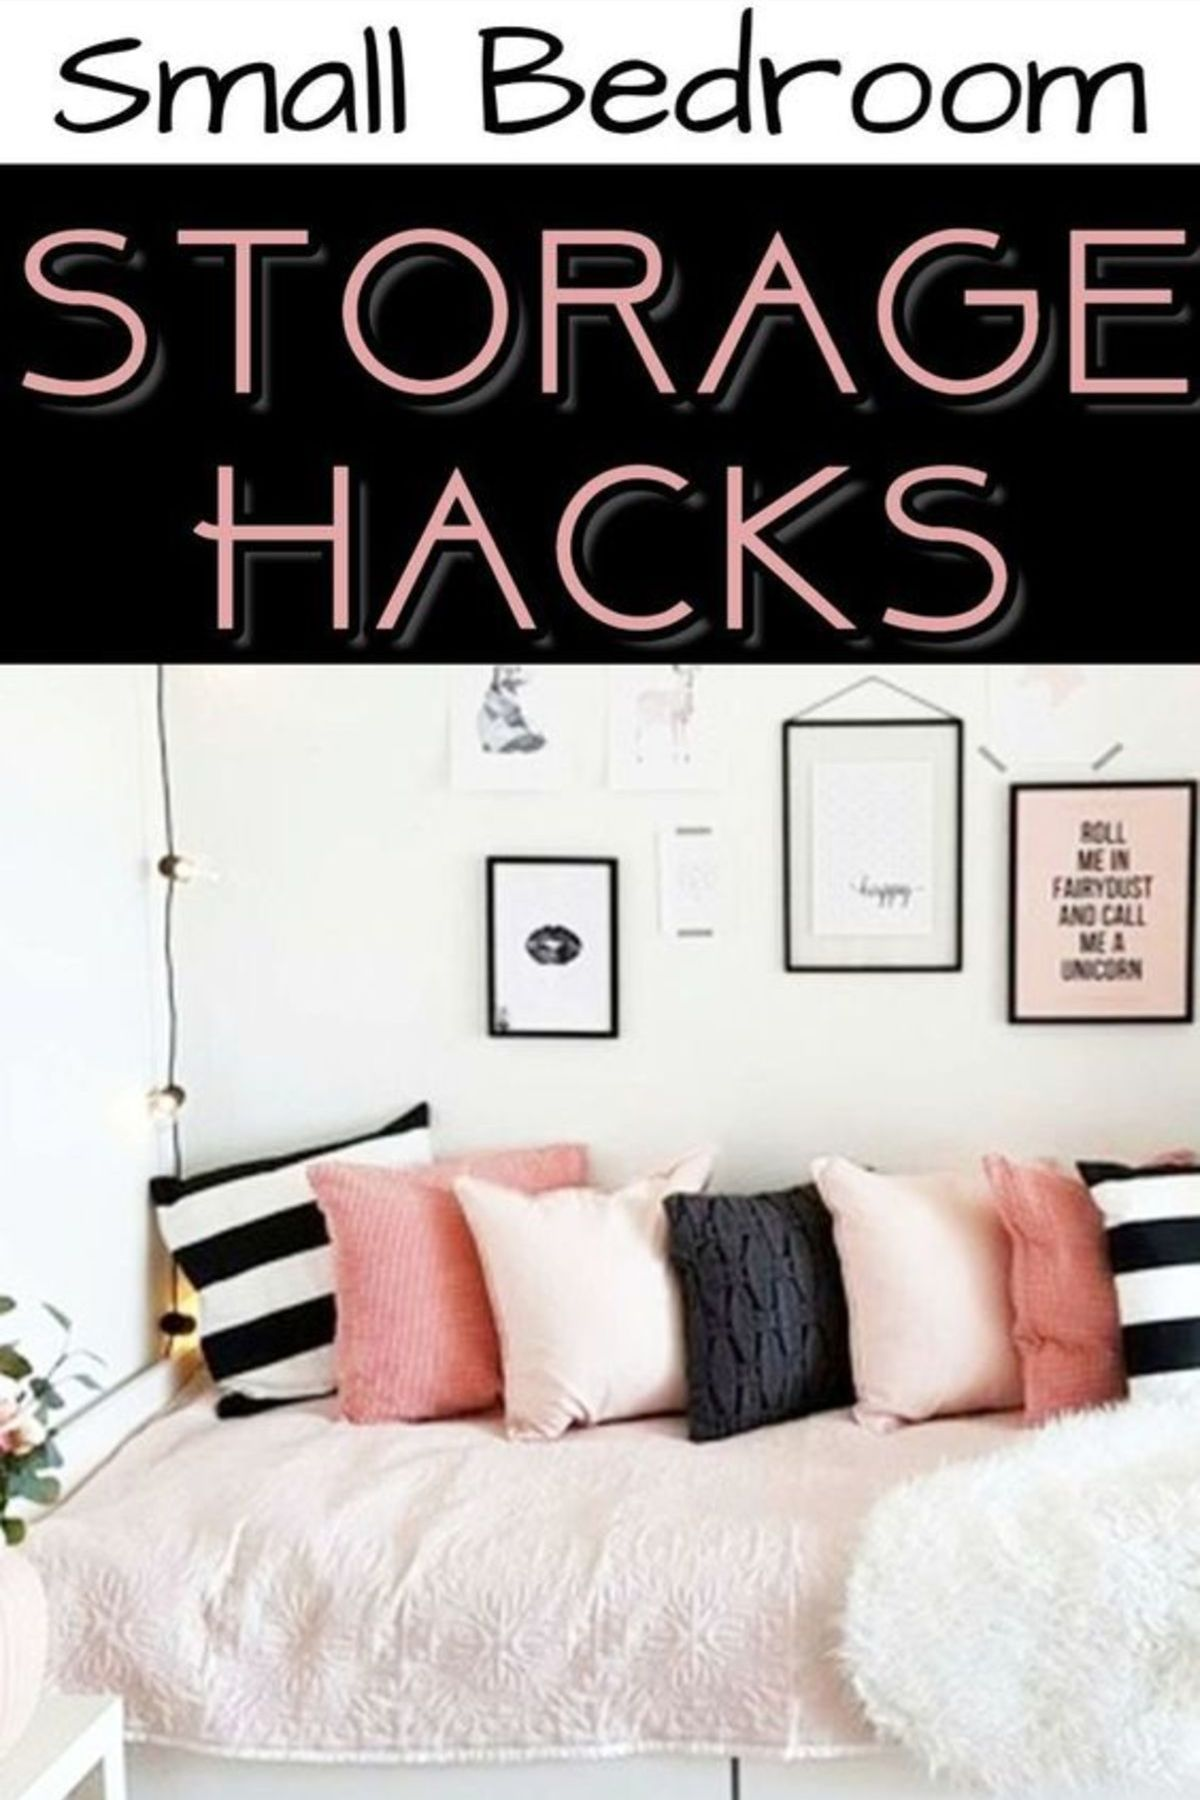 Small Bedroom Storage Hacks Clever Storage Ideas For Small Bedrooms Decluttering Your Life Small Bedroom Storage Small Space Storage Bedroom Small Space Bedroom